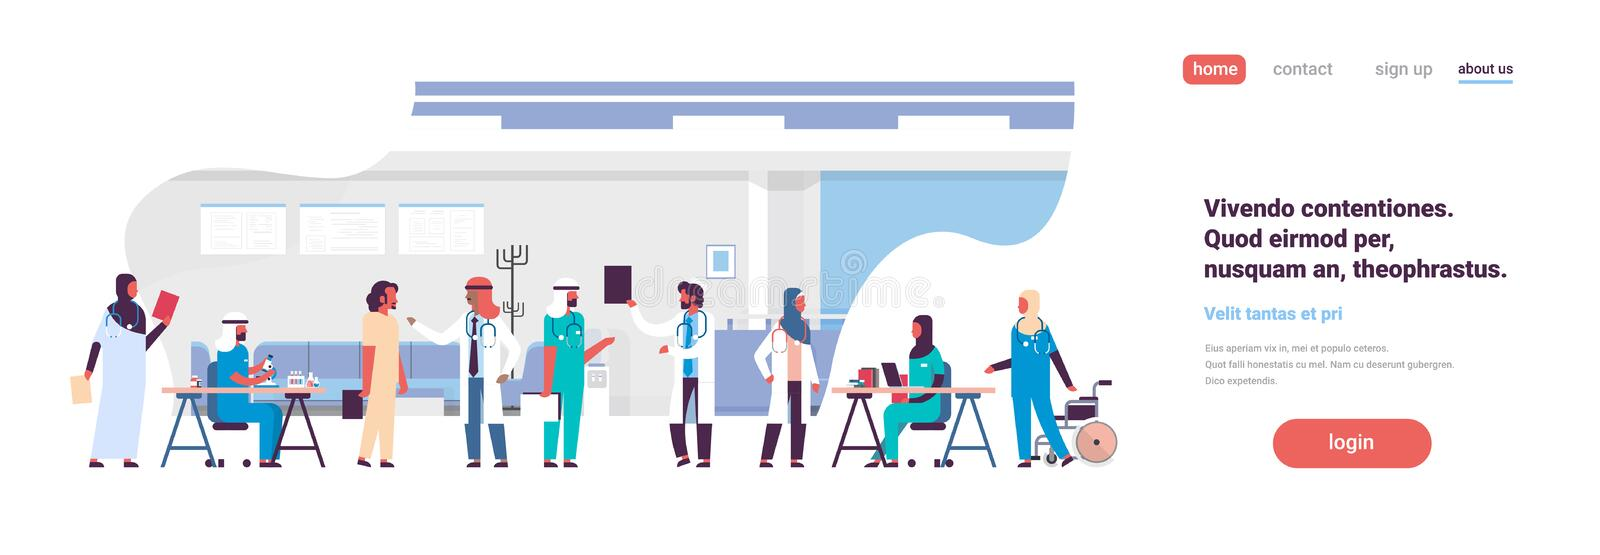 Group arabic doctors hospital communication making scientific experiments diverse medical workers modern clinic interior stock illustration